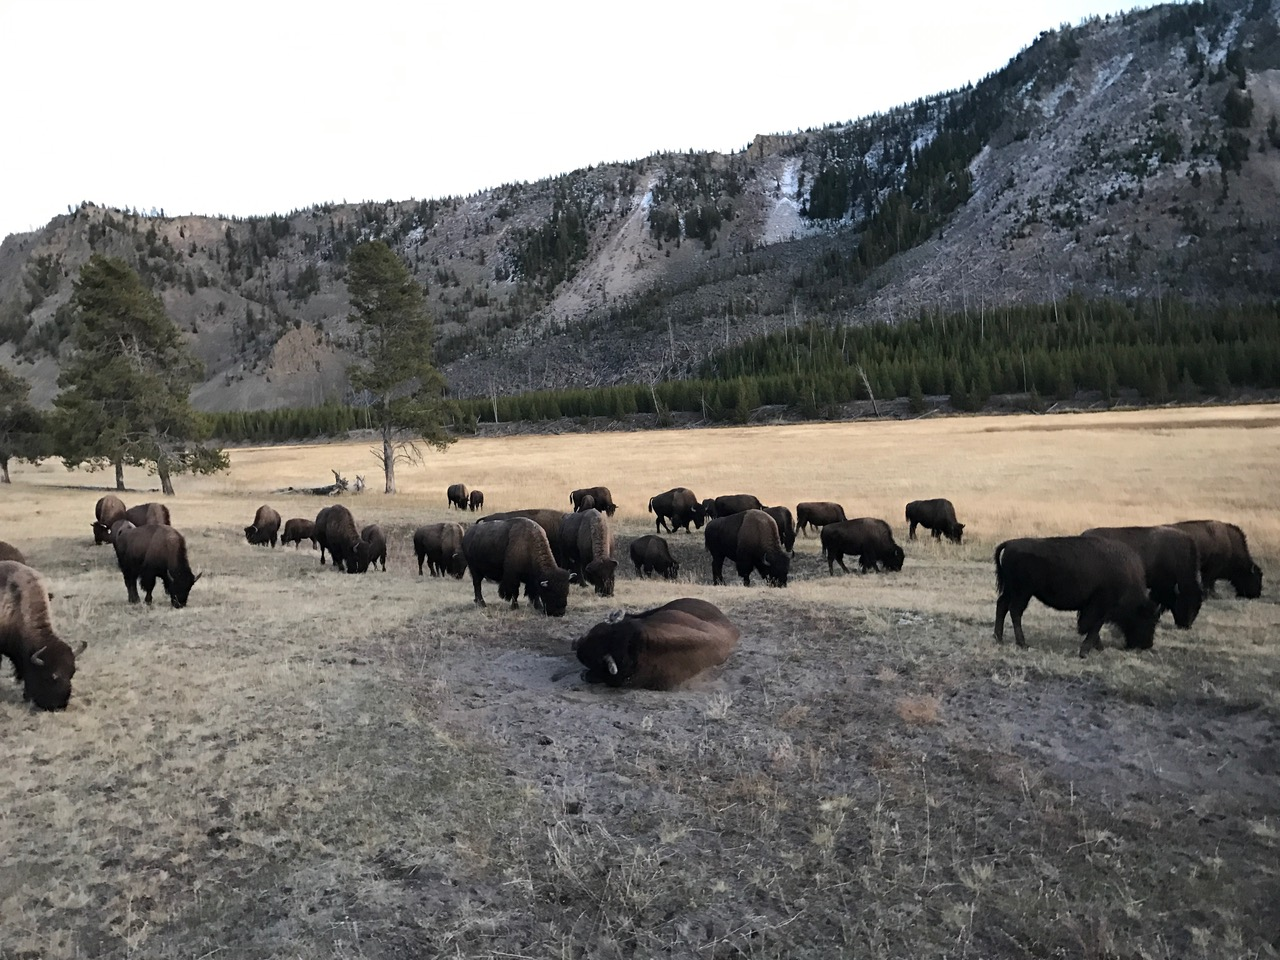 A bison herd moving through a field